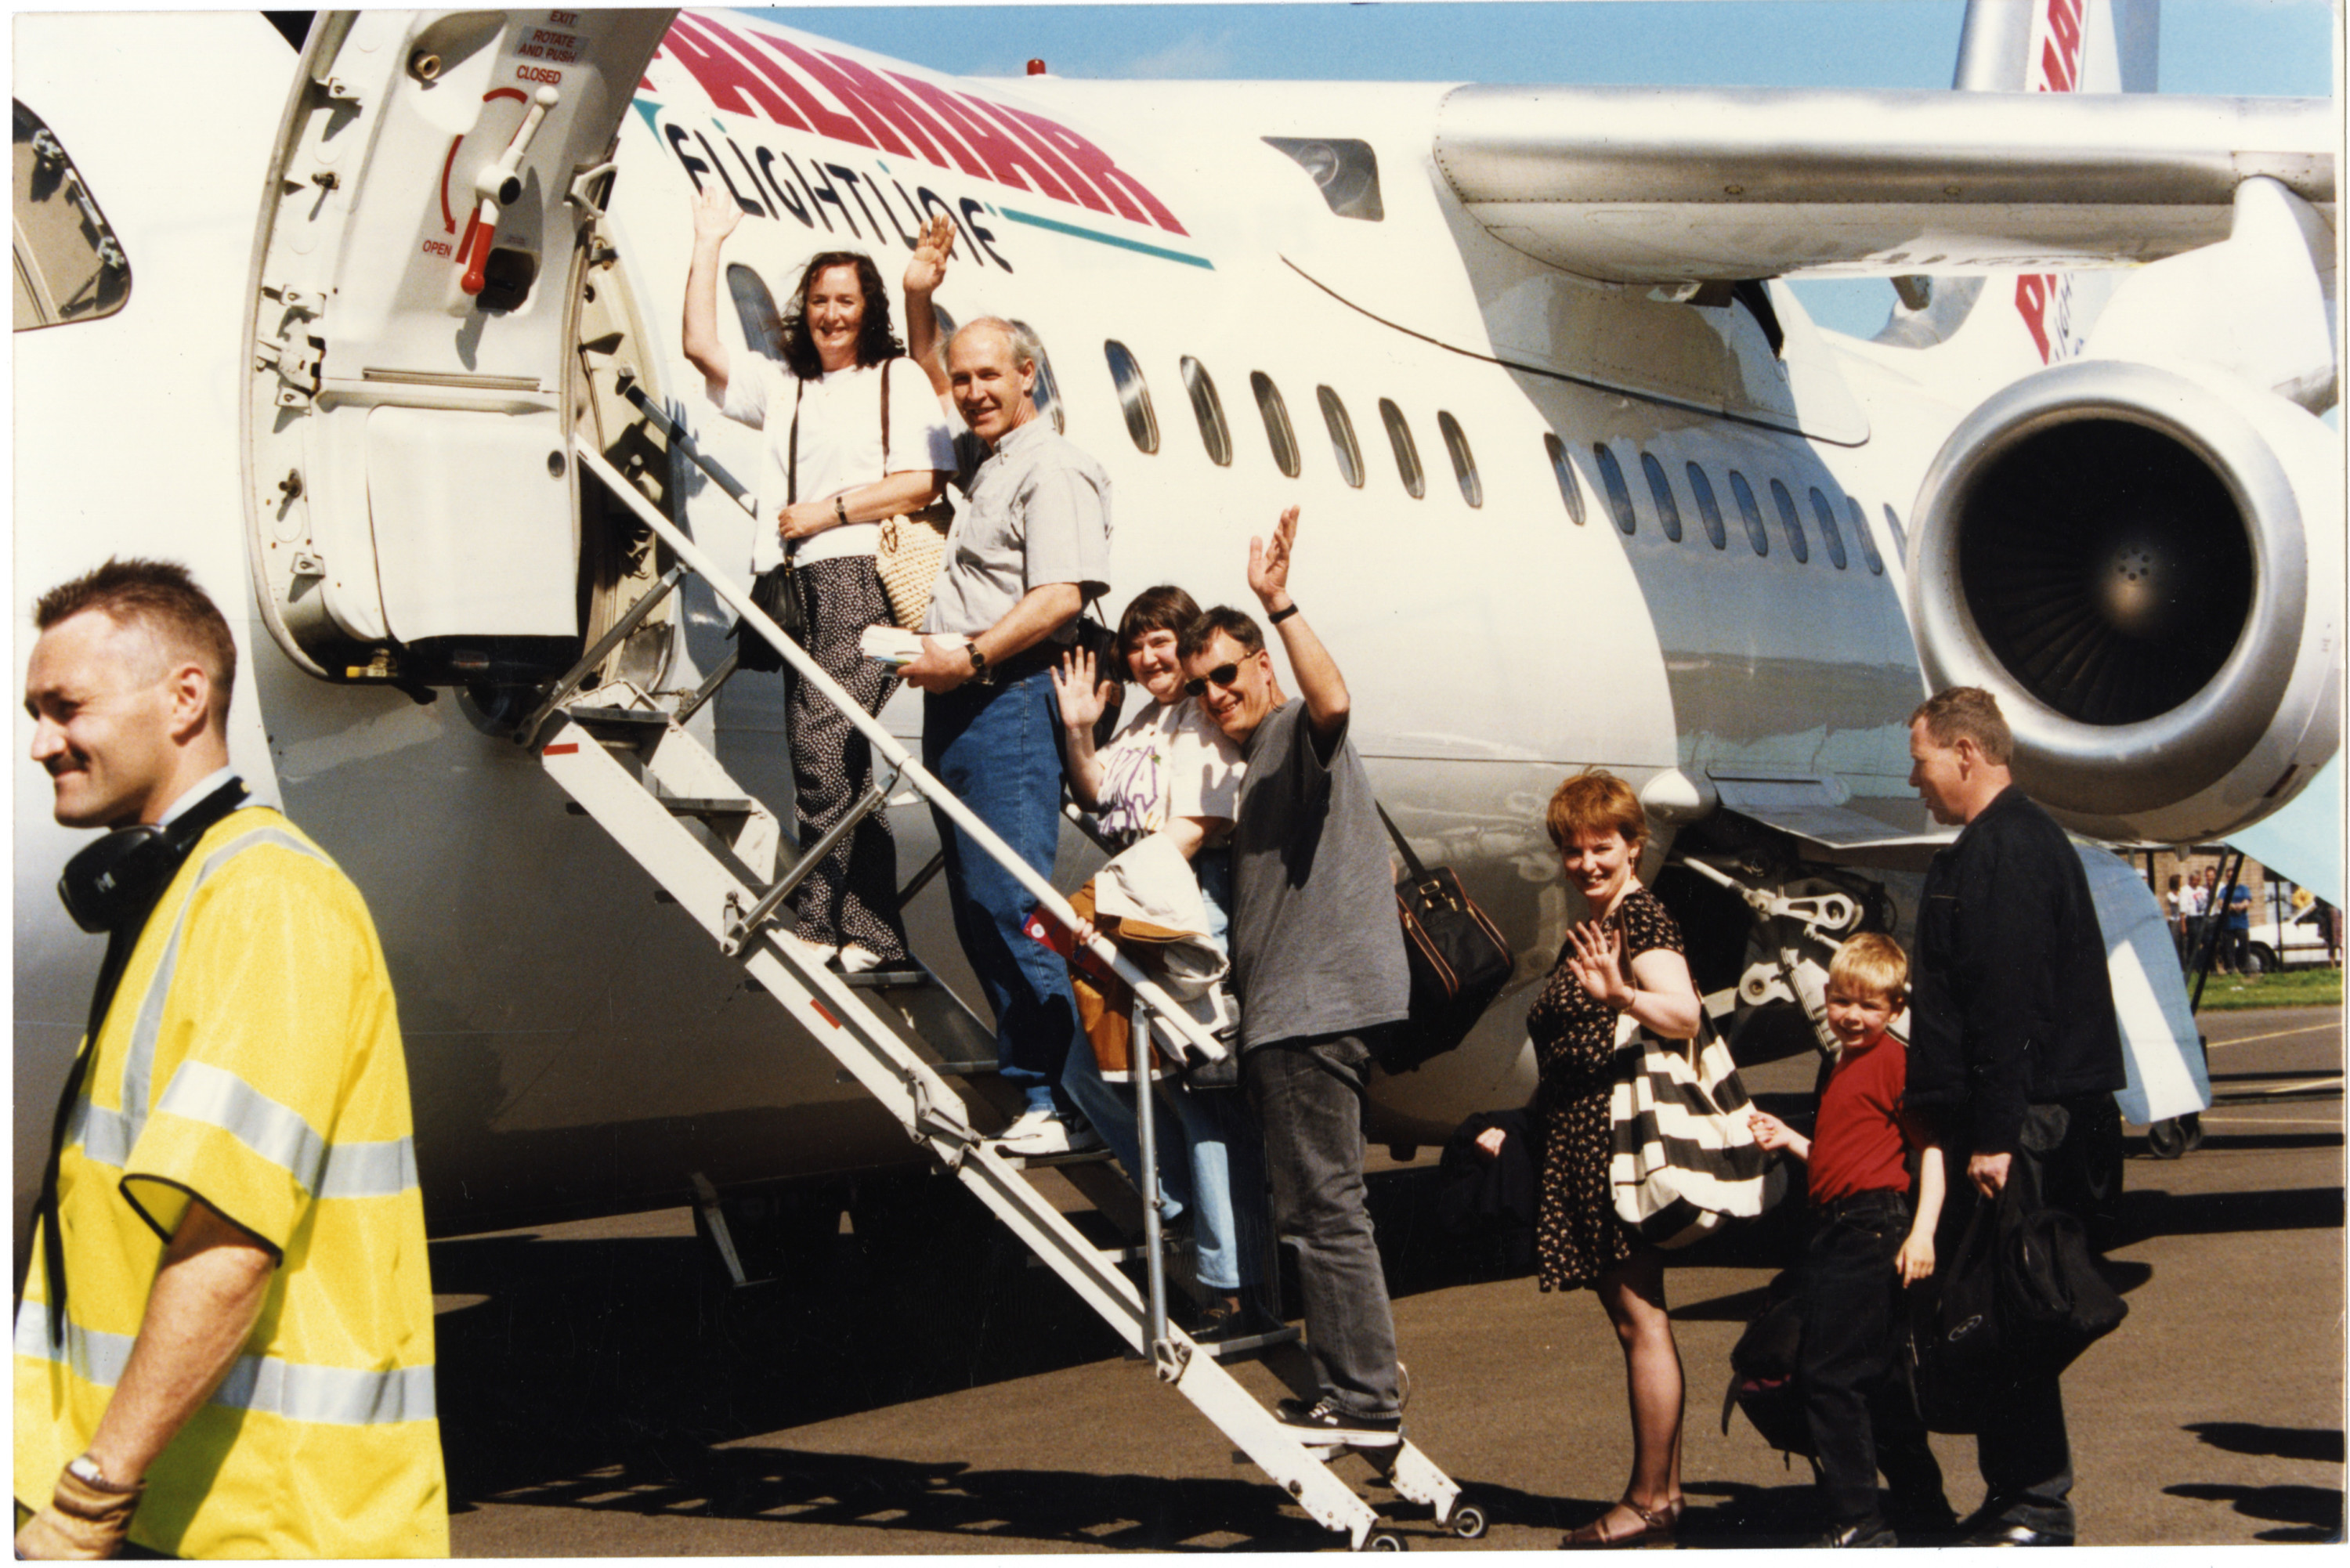 Dundonians Leaving for Holiday. Photograph showing a gorup of Dundonians a they board a plane heading for Majorca. 26 May 1997. H262 1997-05-26 Dundonians Leaving for Holiday (C)DCT Dundonian.